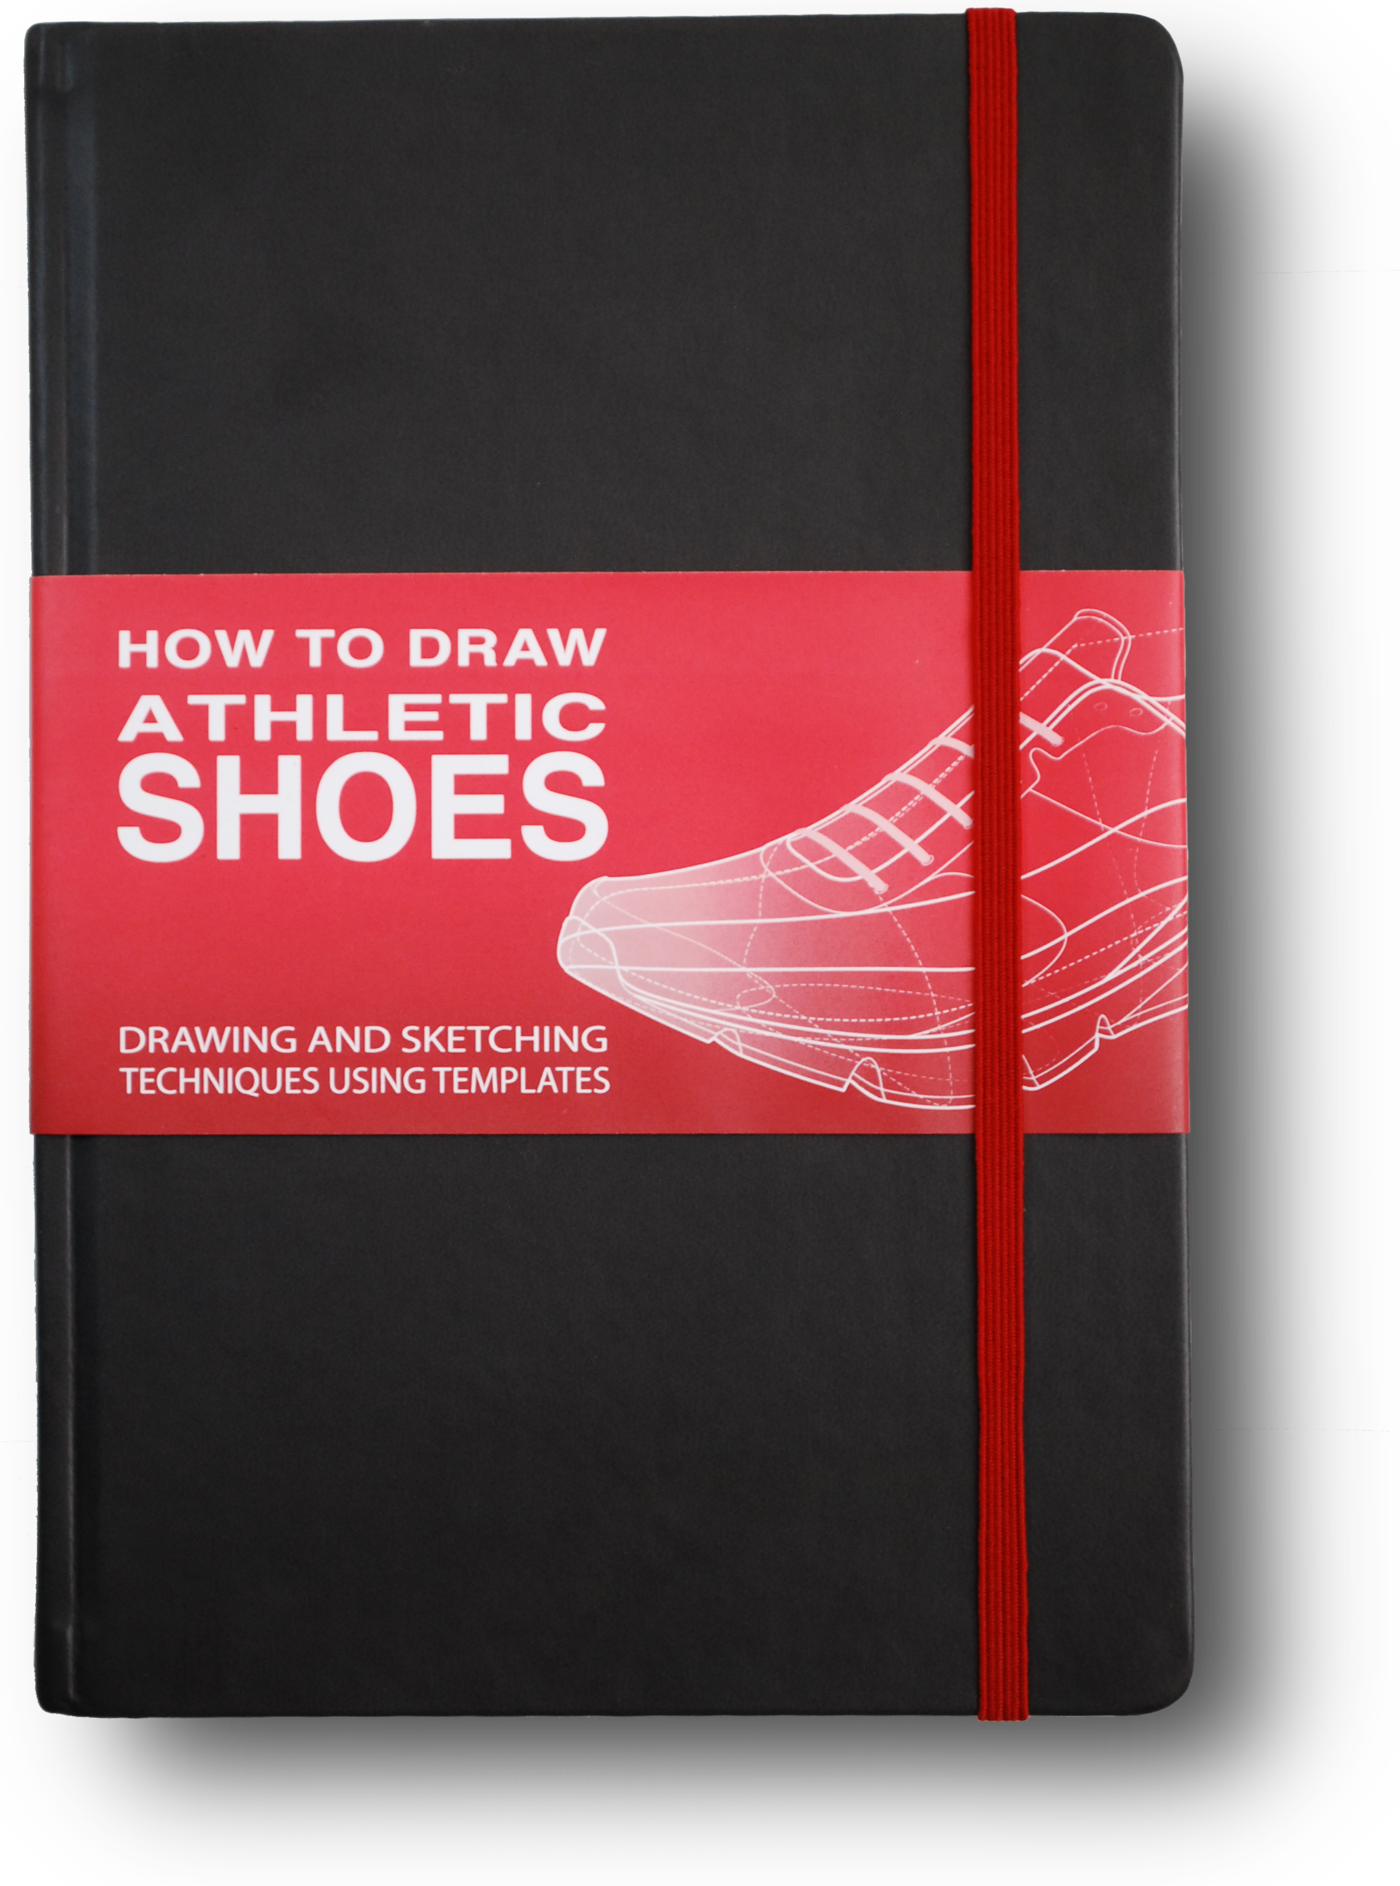 How to draw athletic. Sech drawing sketchbook banner royalty free download